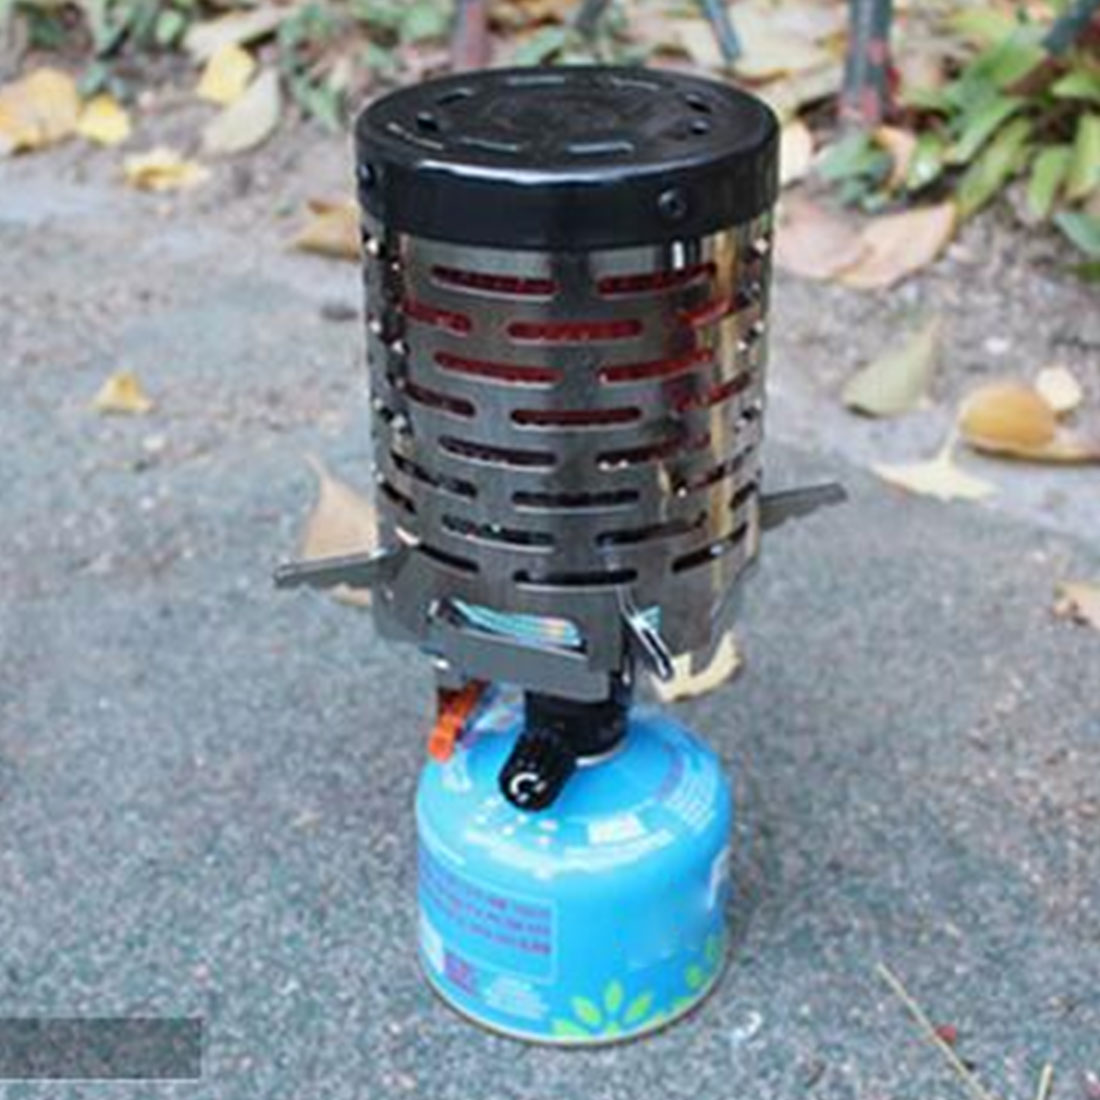 New Mini Heater Outdoor Travel Camping Equipment Warmer Heating Stove Tent Radial Flame Heating Cover mini heater spot far infrared outdoor travel camping equipment warmer heating stove tent heating cover